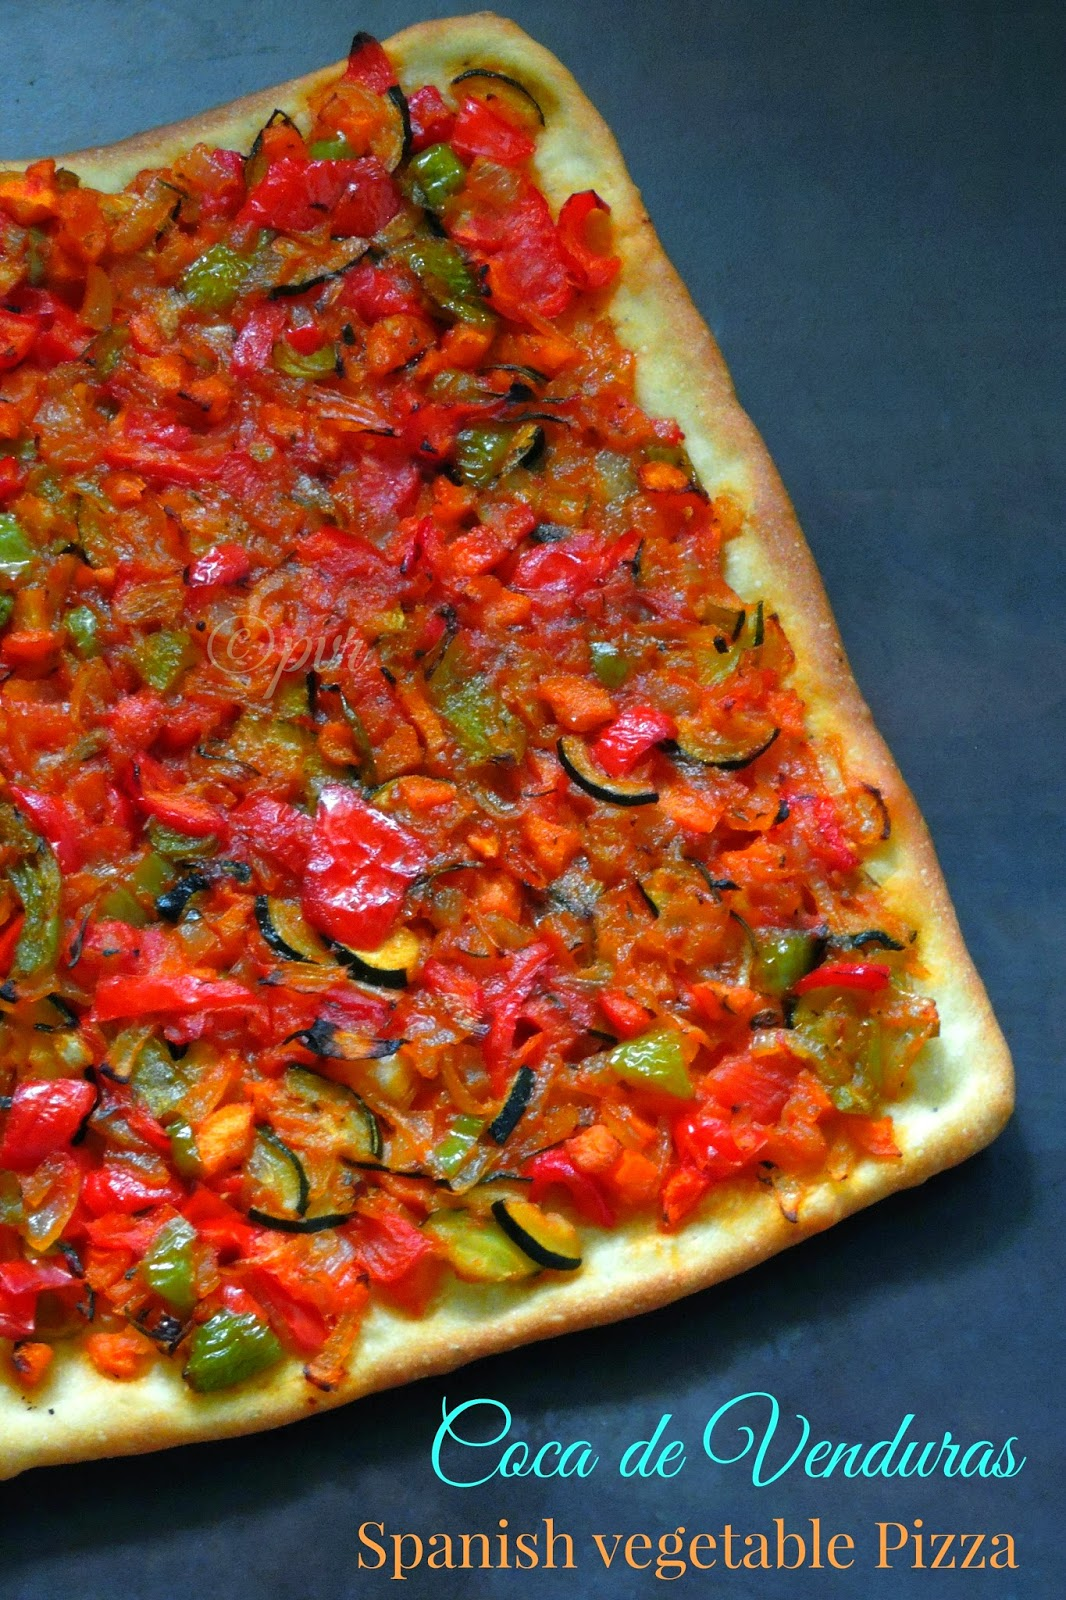 Vegan spanish pizza, coca de venduras, coca vegetable coca catalan